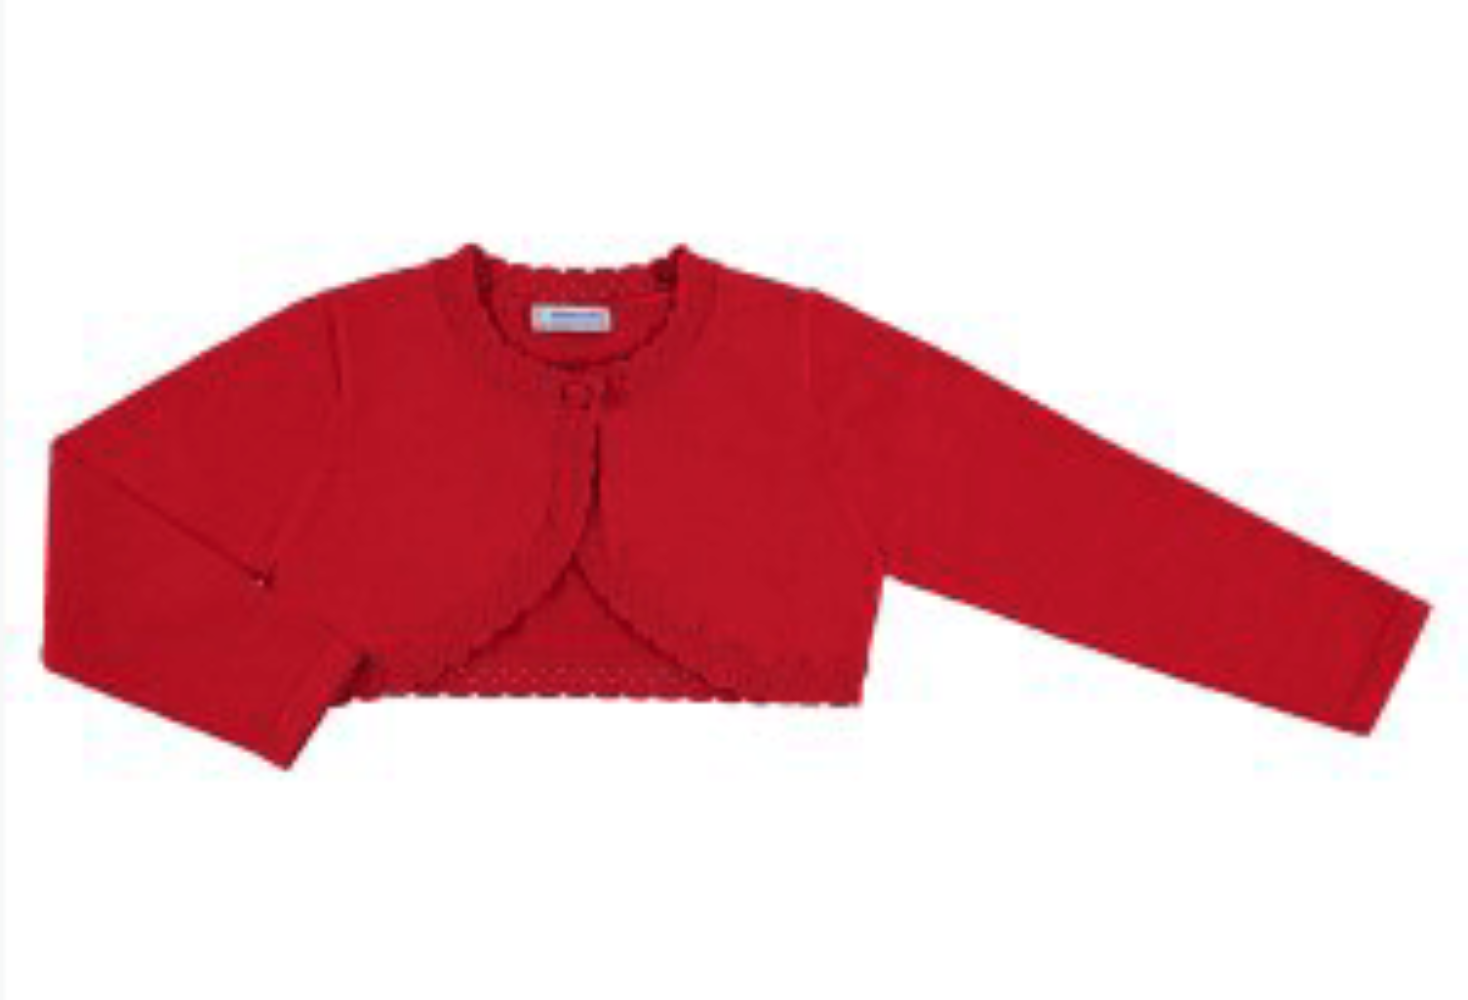 Mayoral Cardigans 6Y / Rouge Cardigan rouge Red cardigan